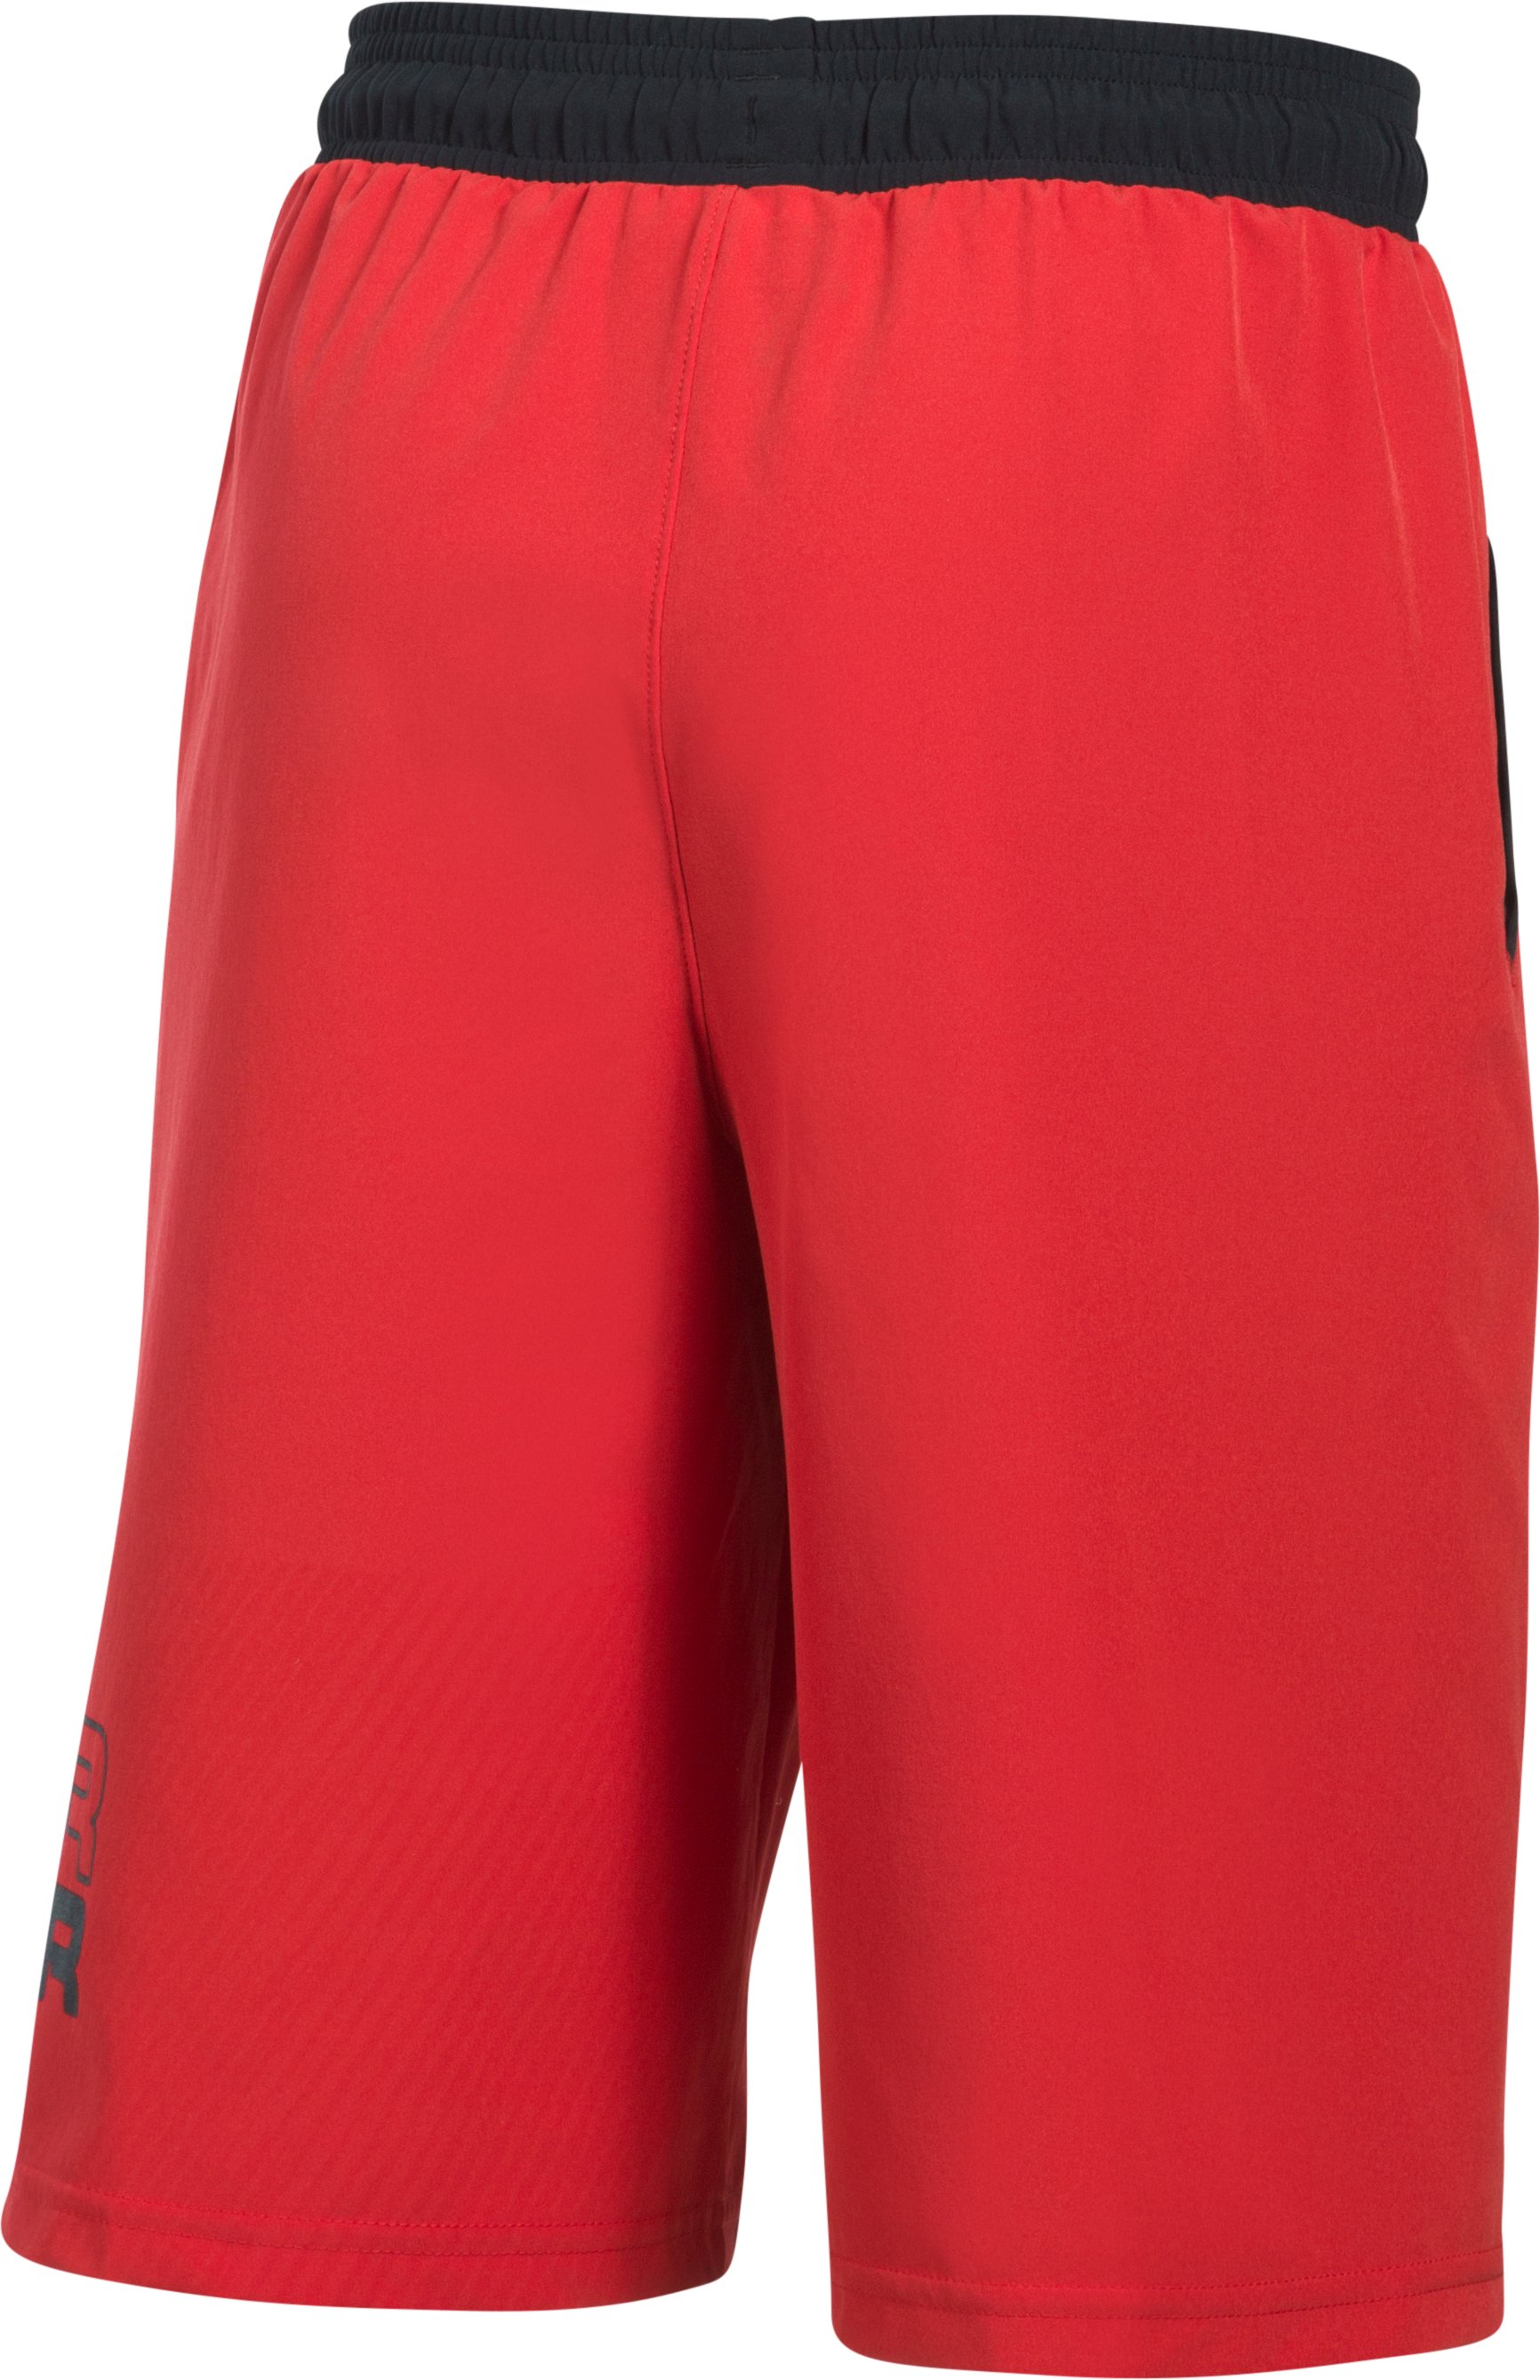 Boys' UA Activate Shorts, Red